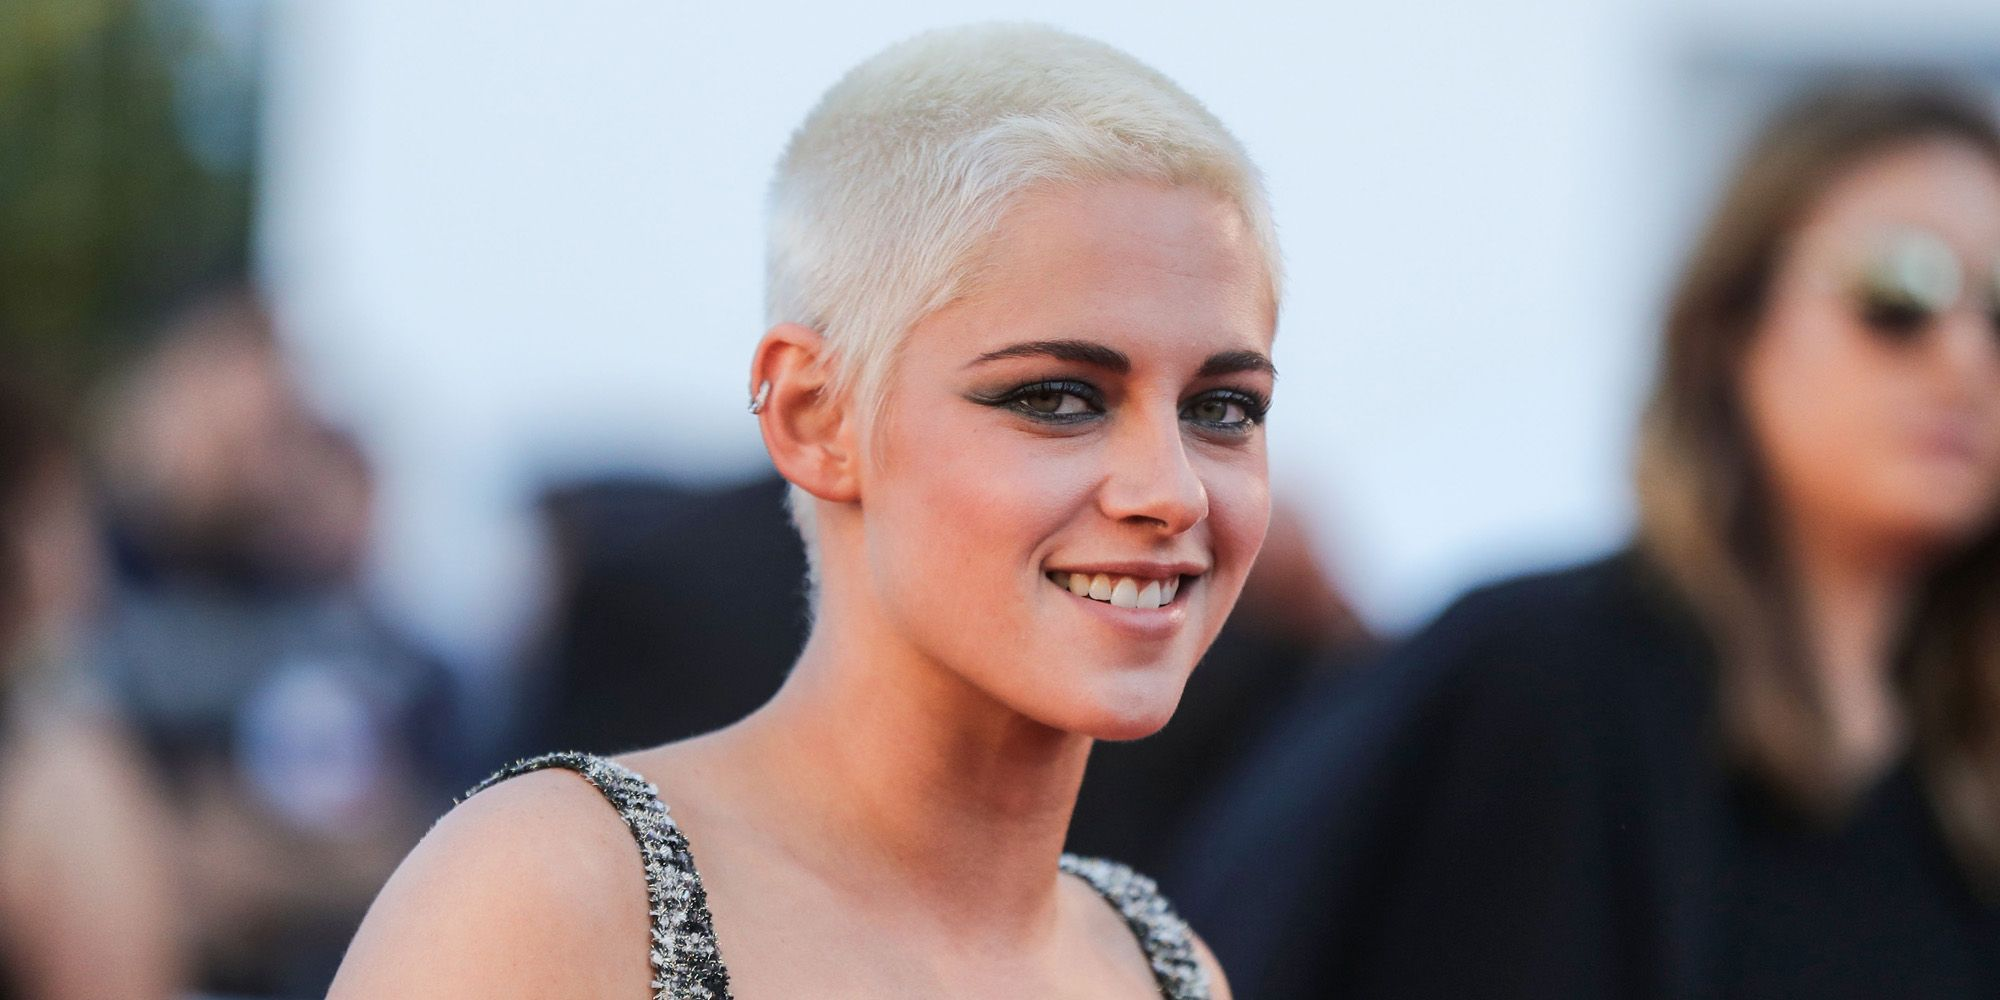 Kristen Stewart Wore a Perfectly Unique Dress on the Cannes Red Carpet